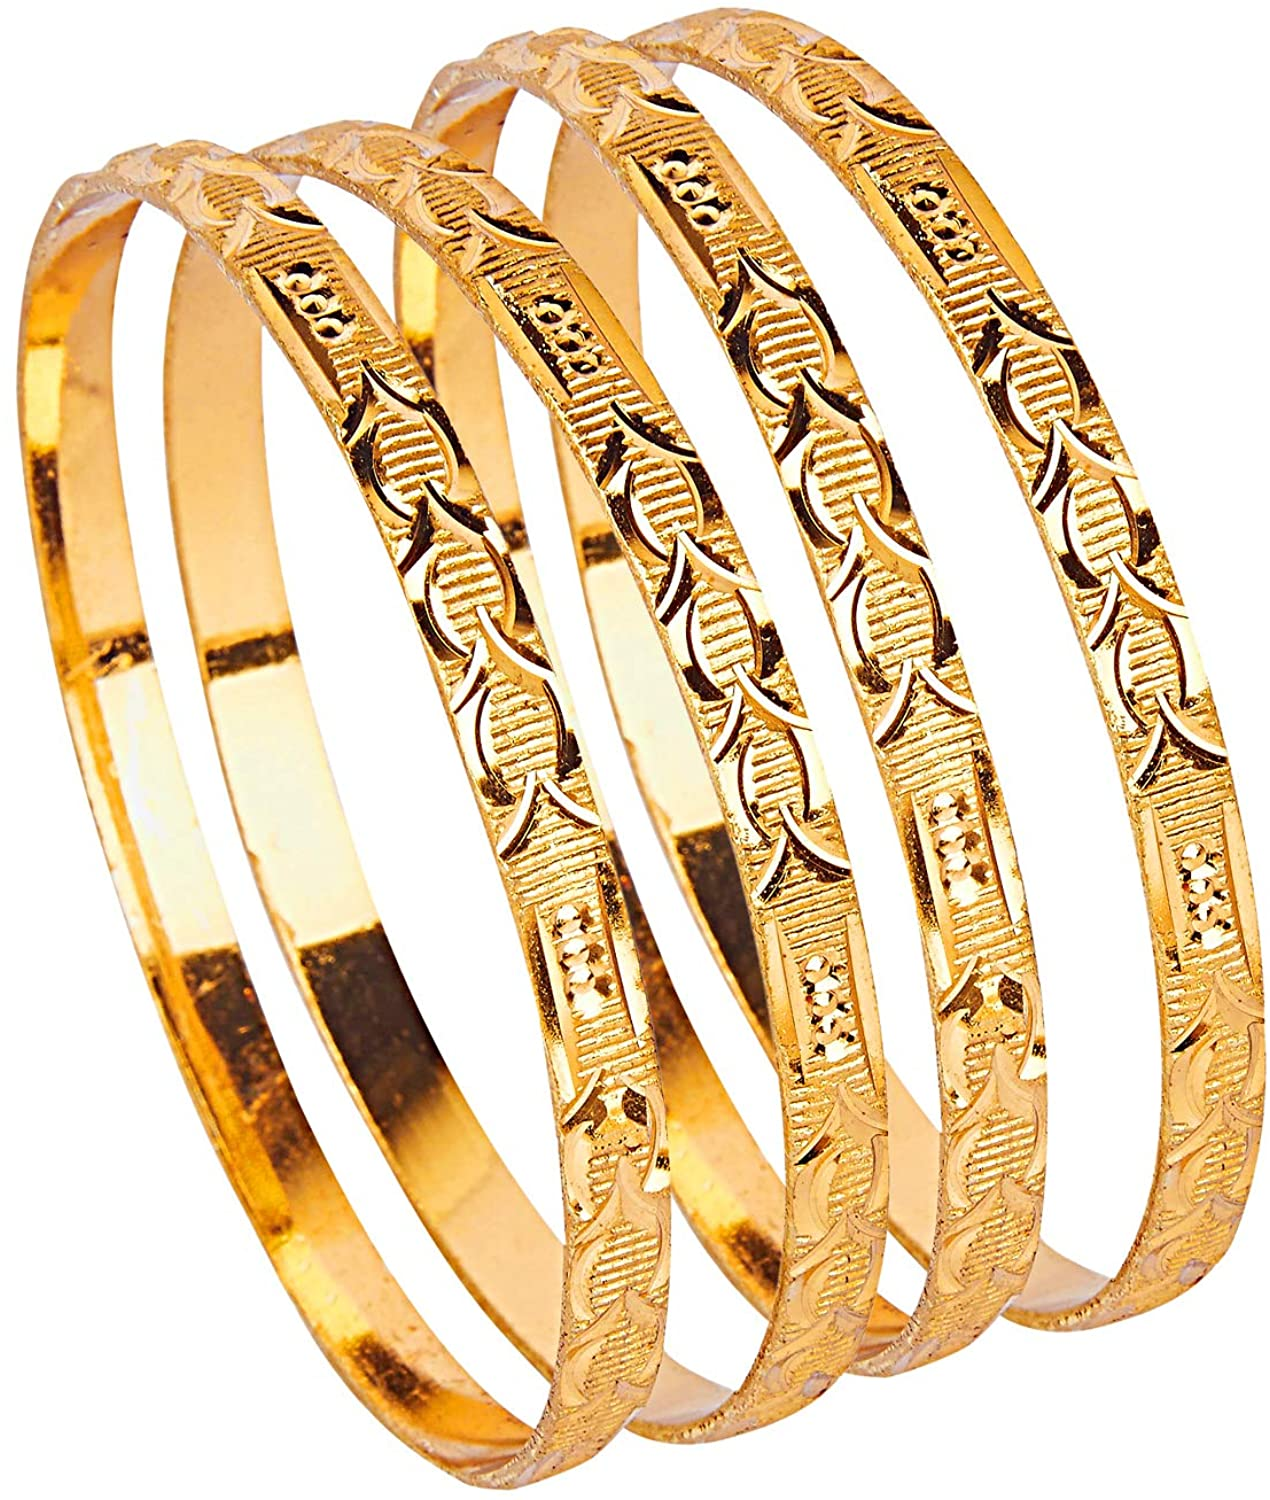 Bodha 24K Fine Gold Plated Traditional Indian Bollywood Designer Bangles for Women (Pack of 4) SJ_3274